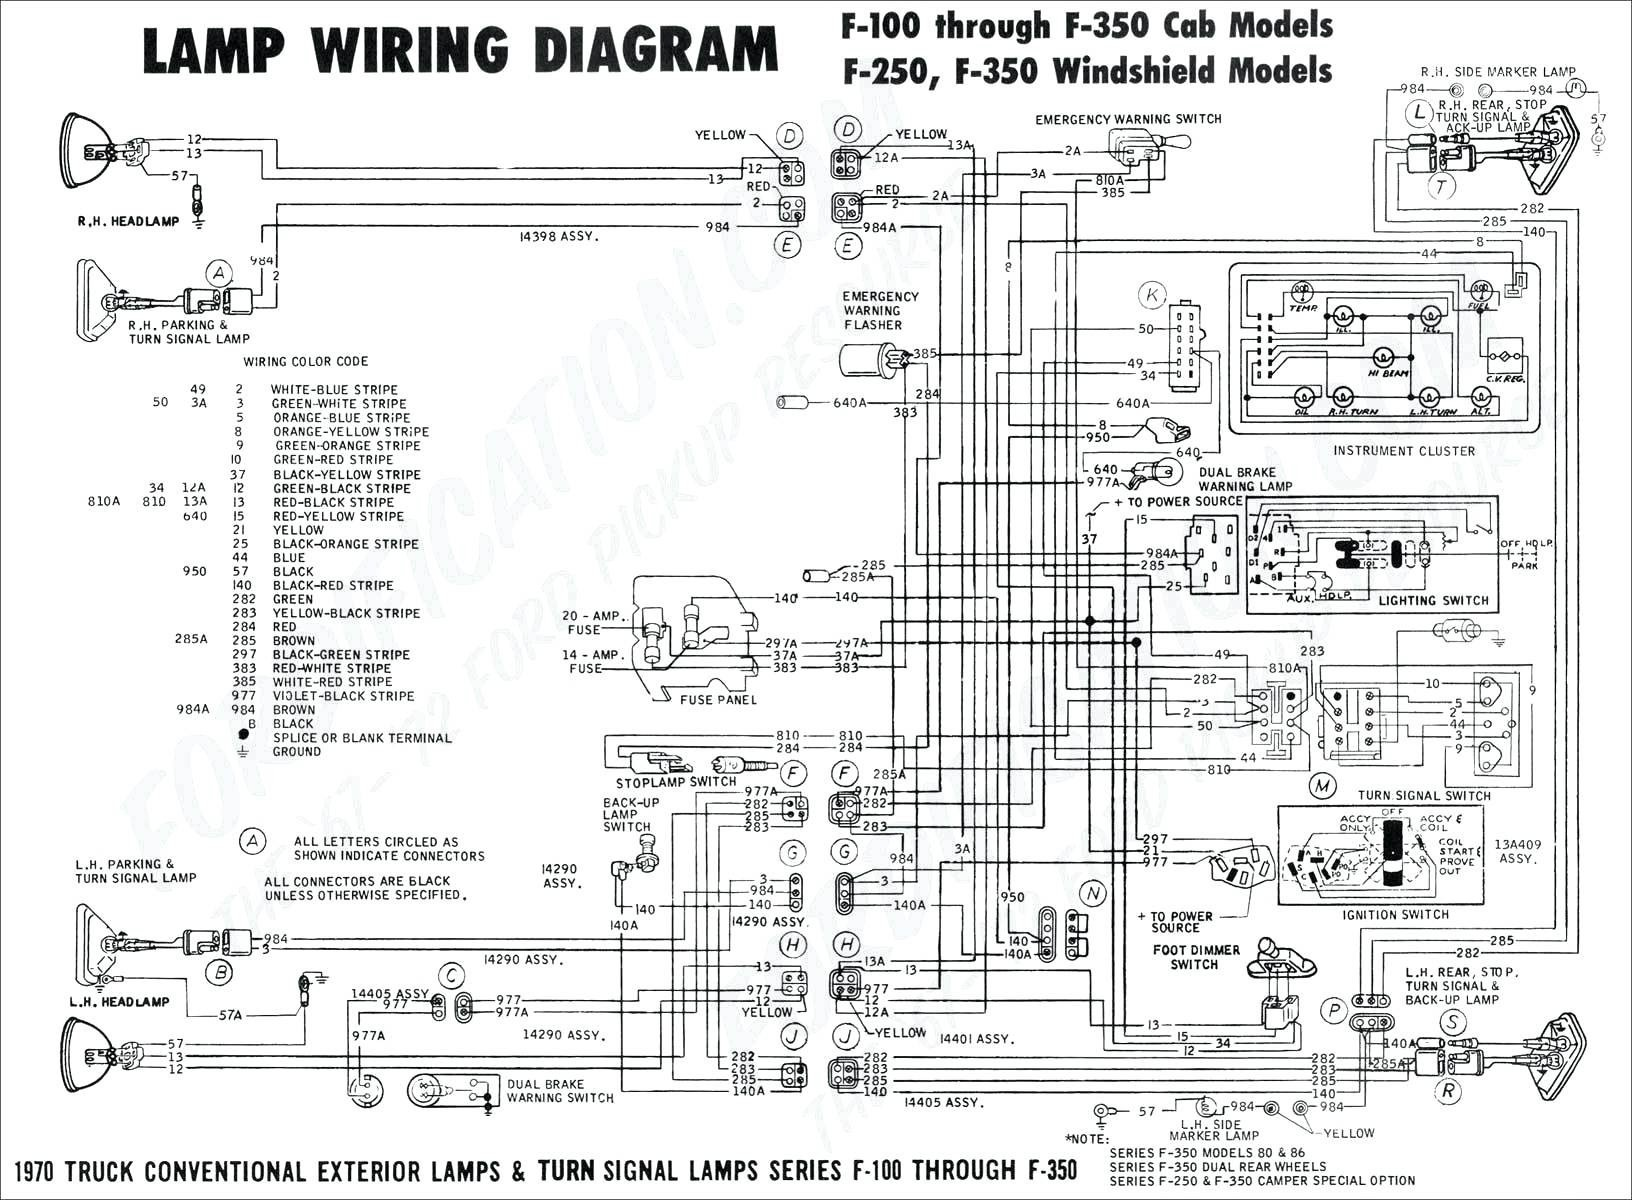 1997 Nissan Altima Engine Diagram Karr Wiring Diagram Versa Daily Update Wiring Diagram Of 1997 Nissan Altima Engine Diagram 1995 Nissan Pathfinder Starter Wiring Diagram at Manuals Library